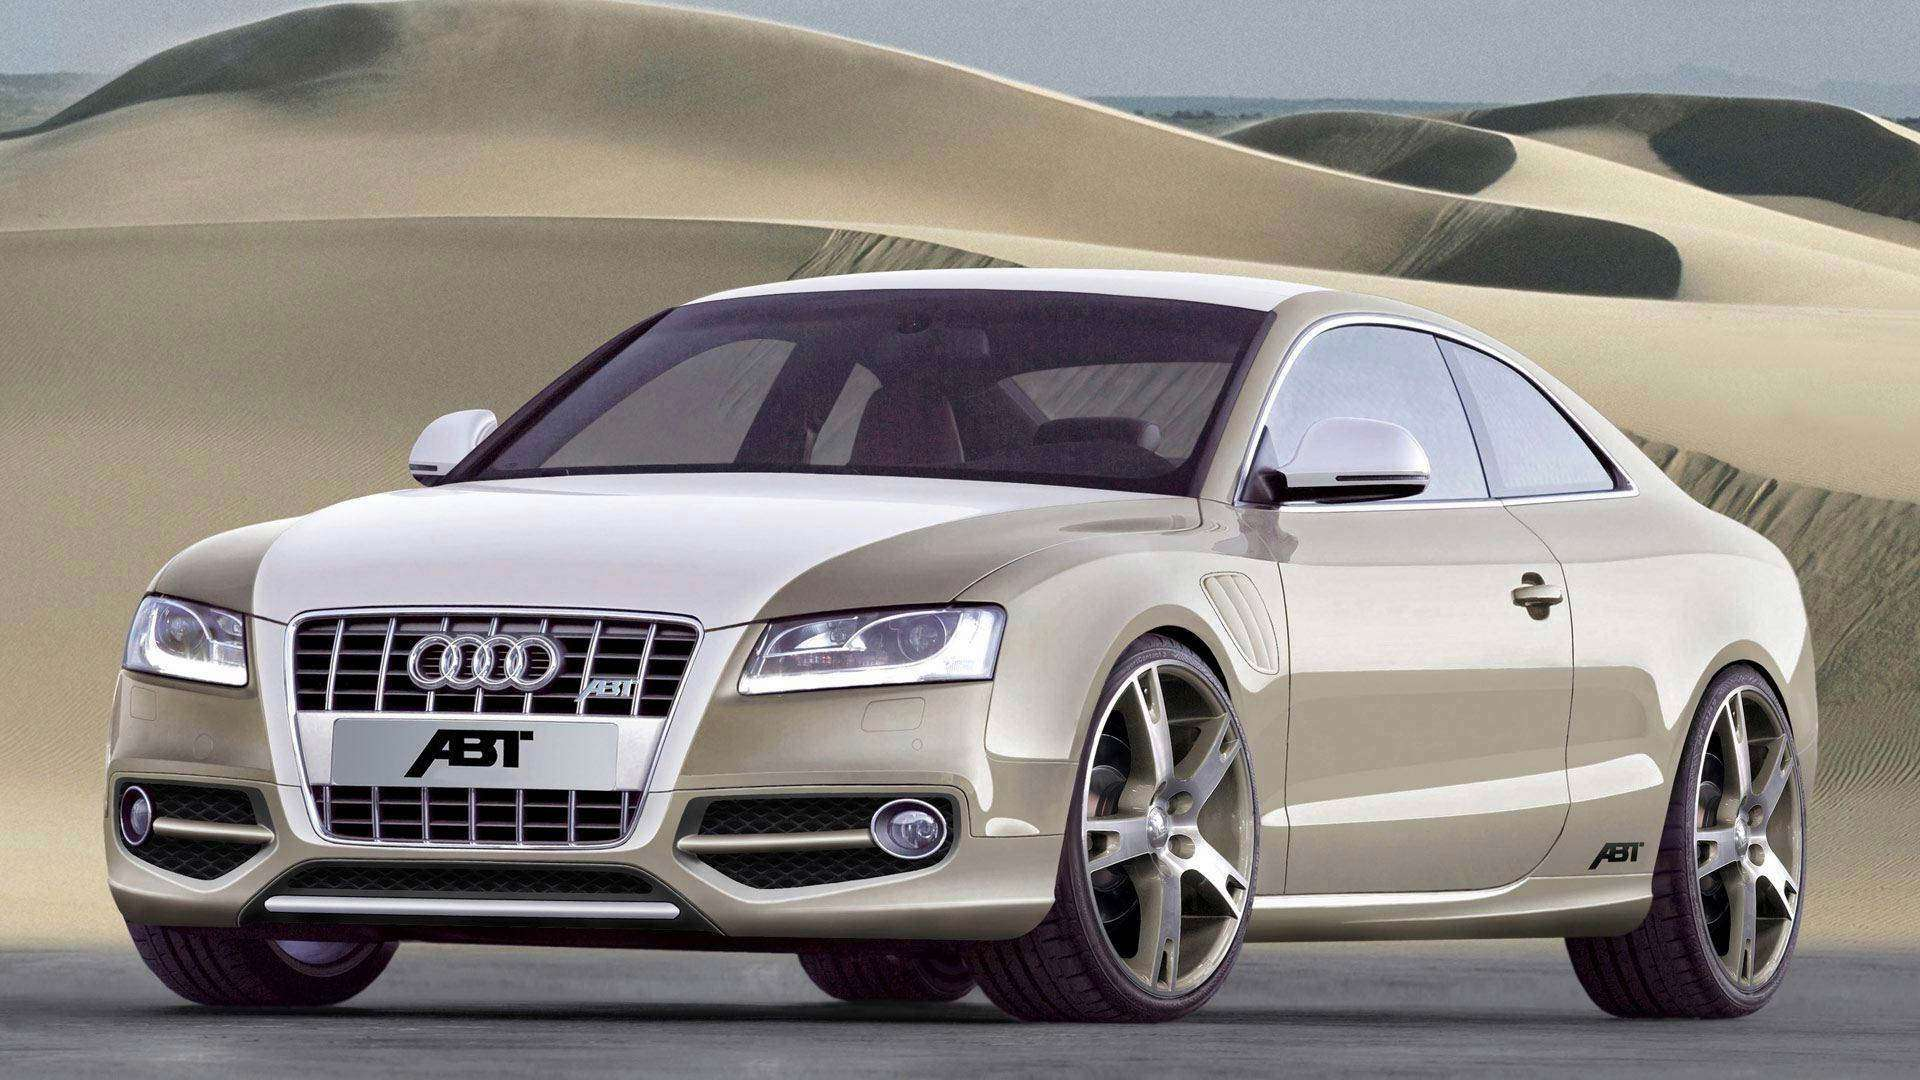 Audi car hd desktop backgrounds pictures images photos wallpapers